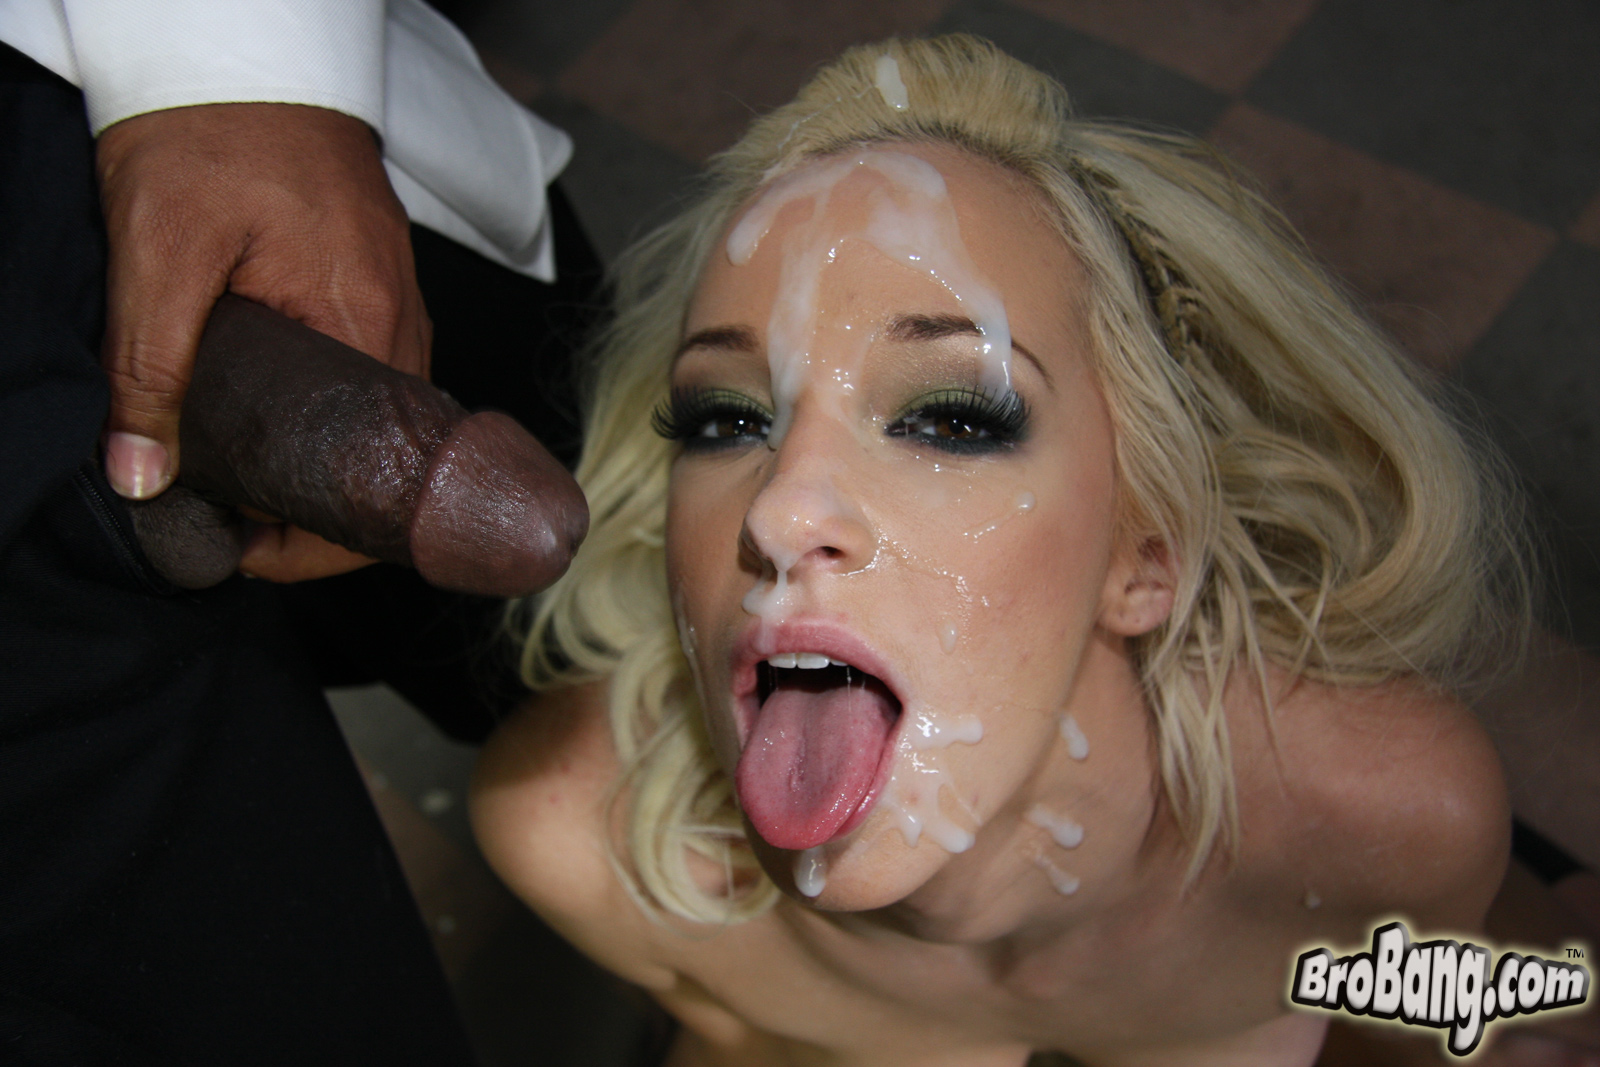 Hot bukkake cum blonde wish